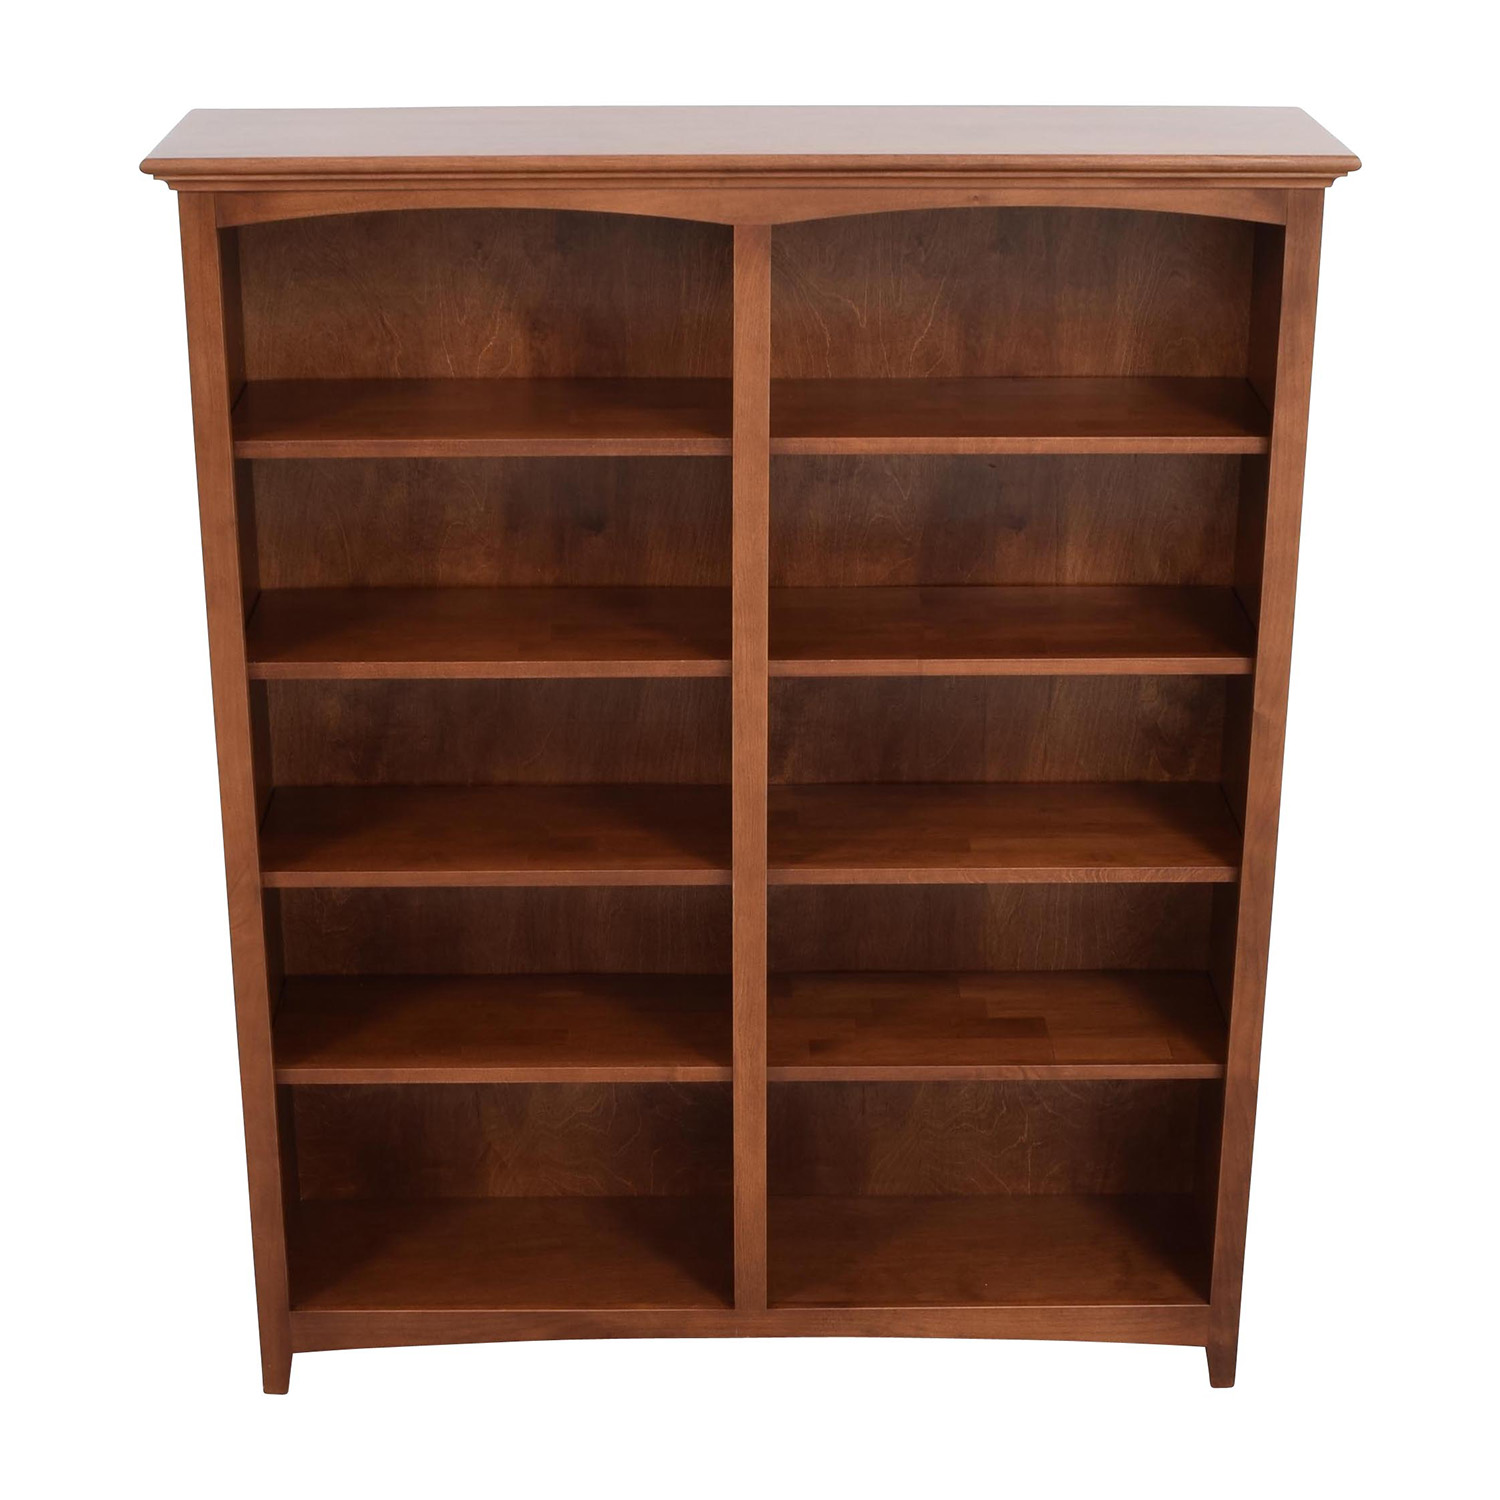 Whitter Wood Furniture Whitter Wood Furniture Ten-Shelf Bookcase second hand